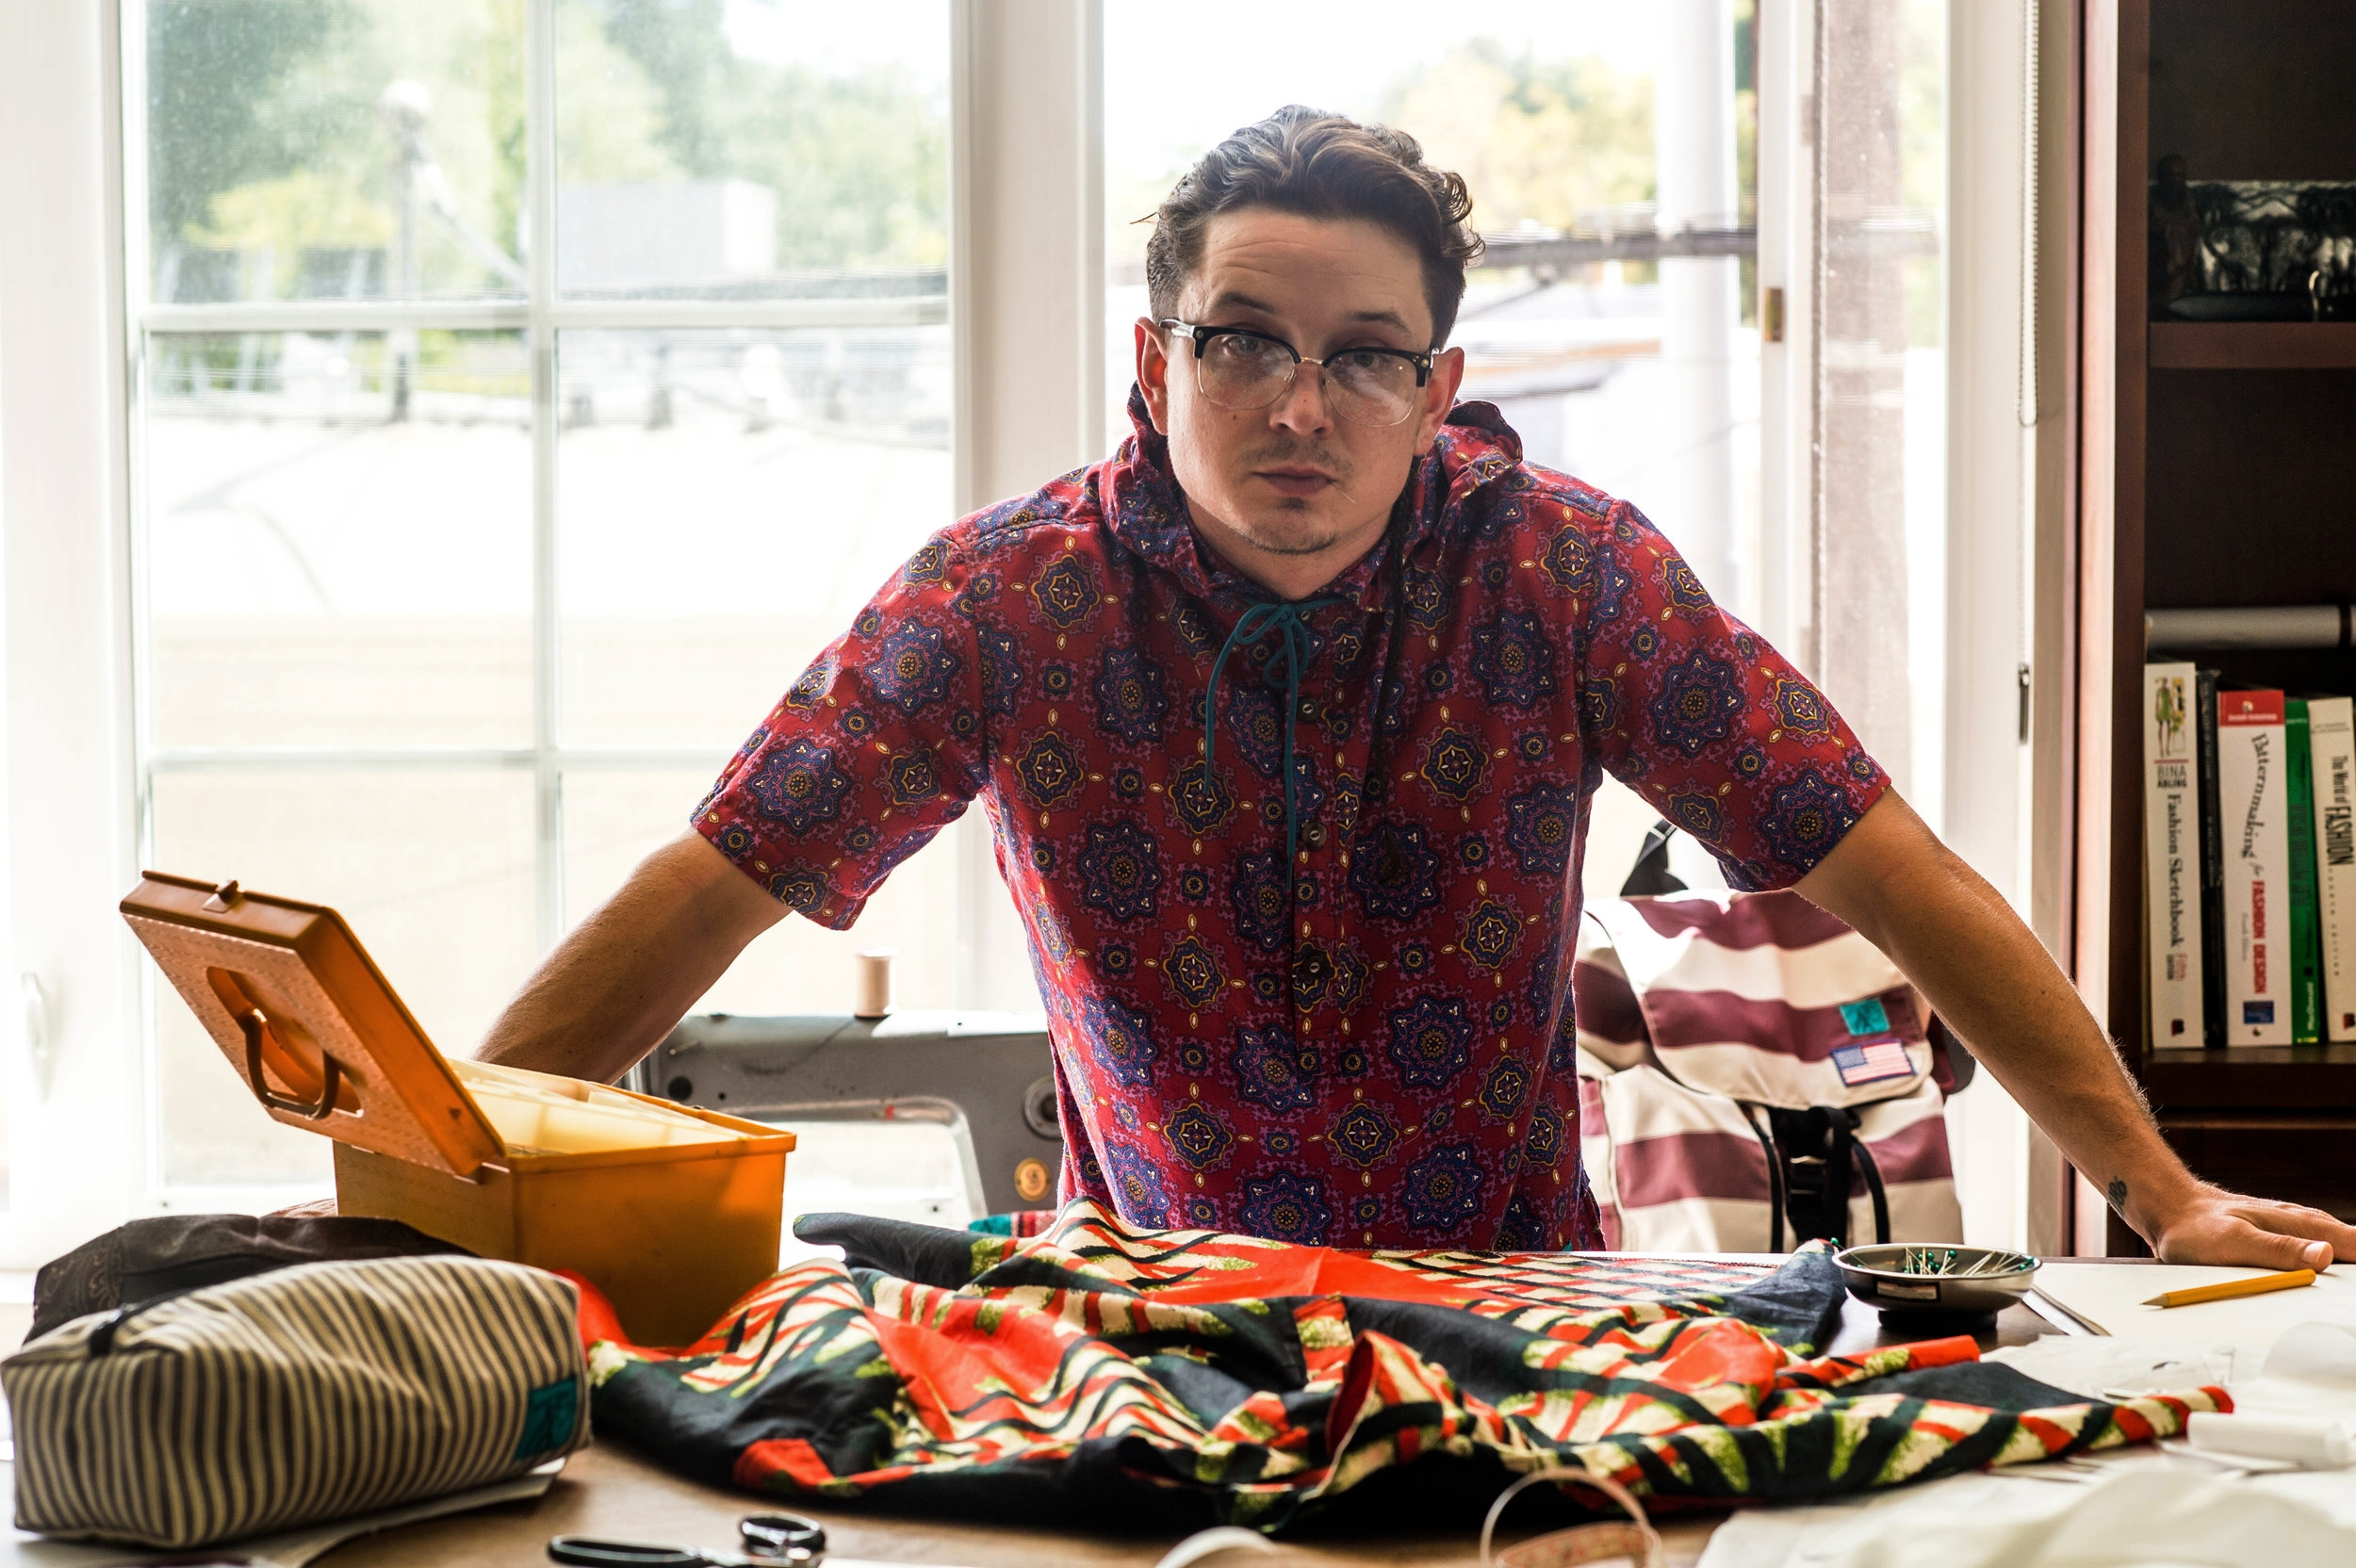 """THE PROMISE - """"I want to bring custom back to men's attire in a big way. There are many brands that create bespoke suites or overpriced products however there is something missing from the true design aspect of the custom/bespoke world. I am here to work as a true bespoke fashion designer.""""— Samuel Rose"""